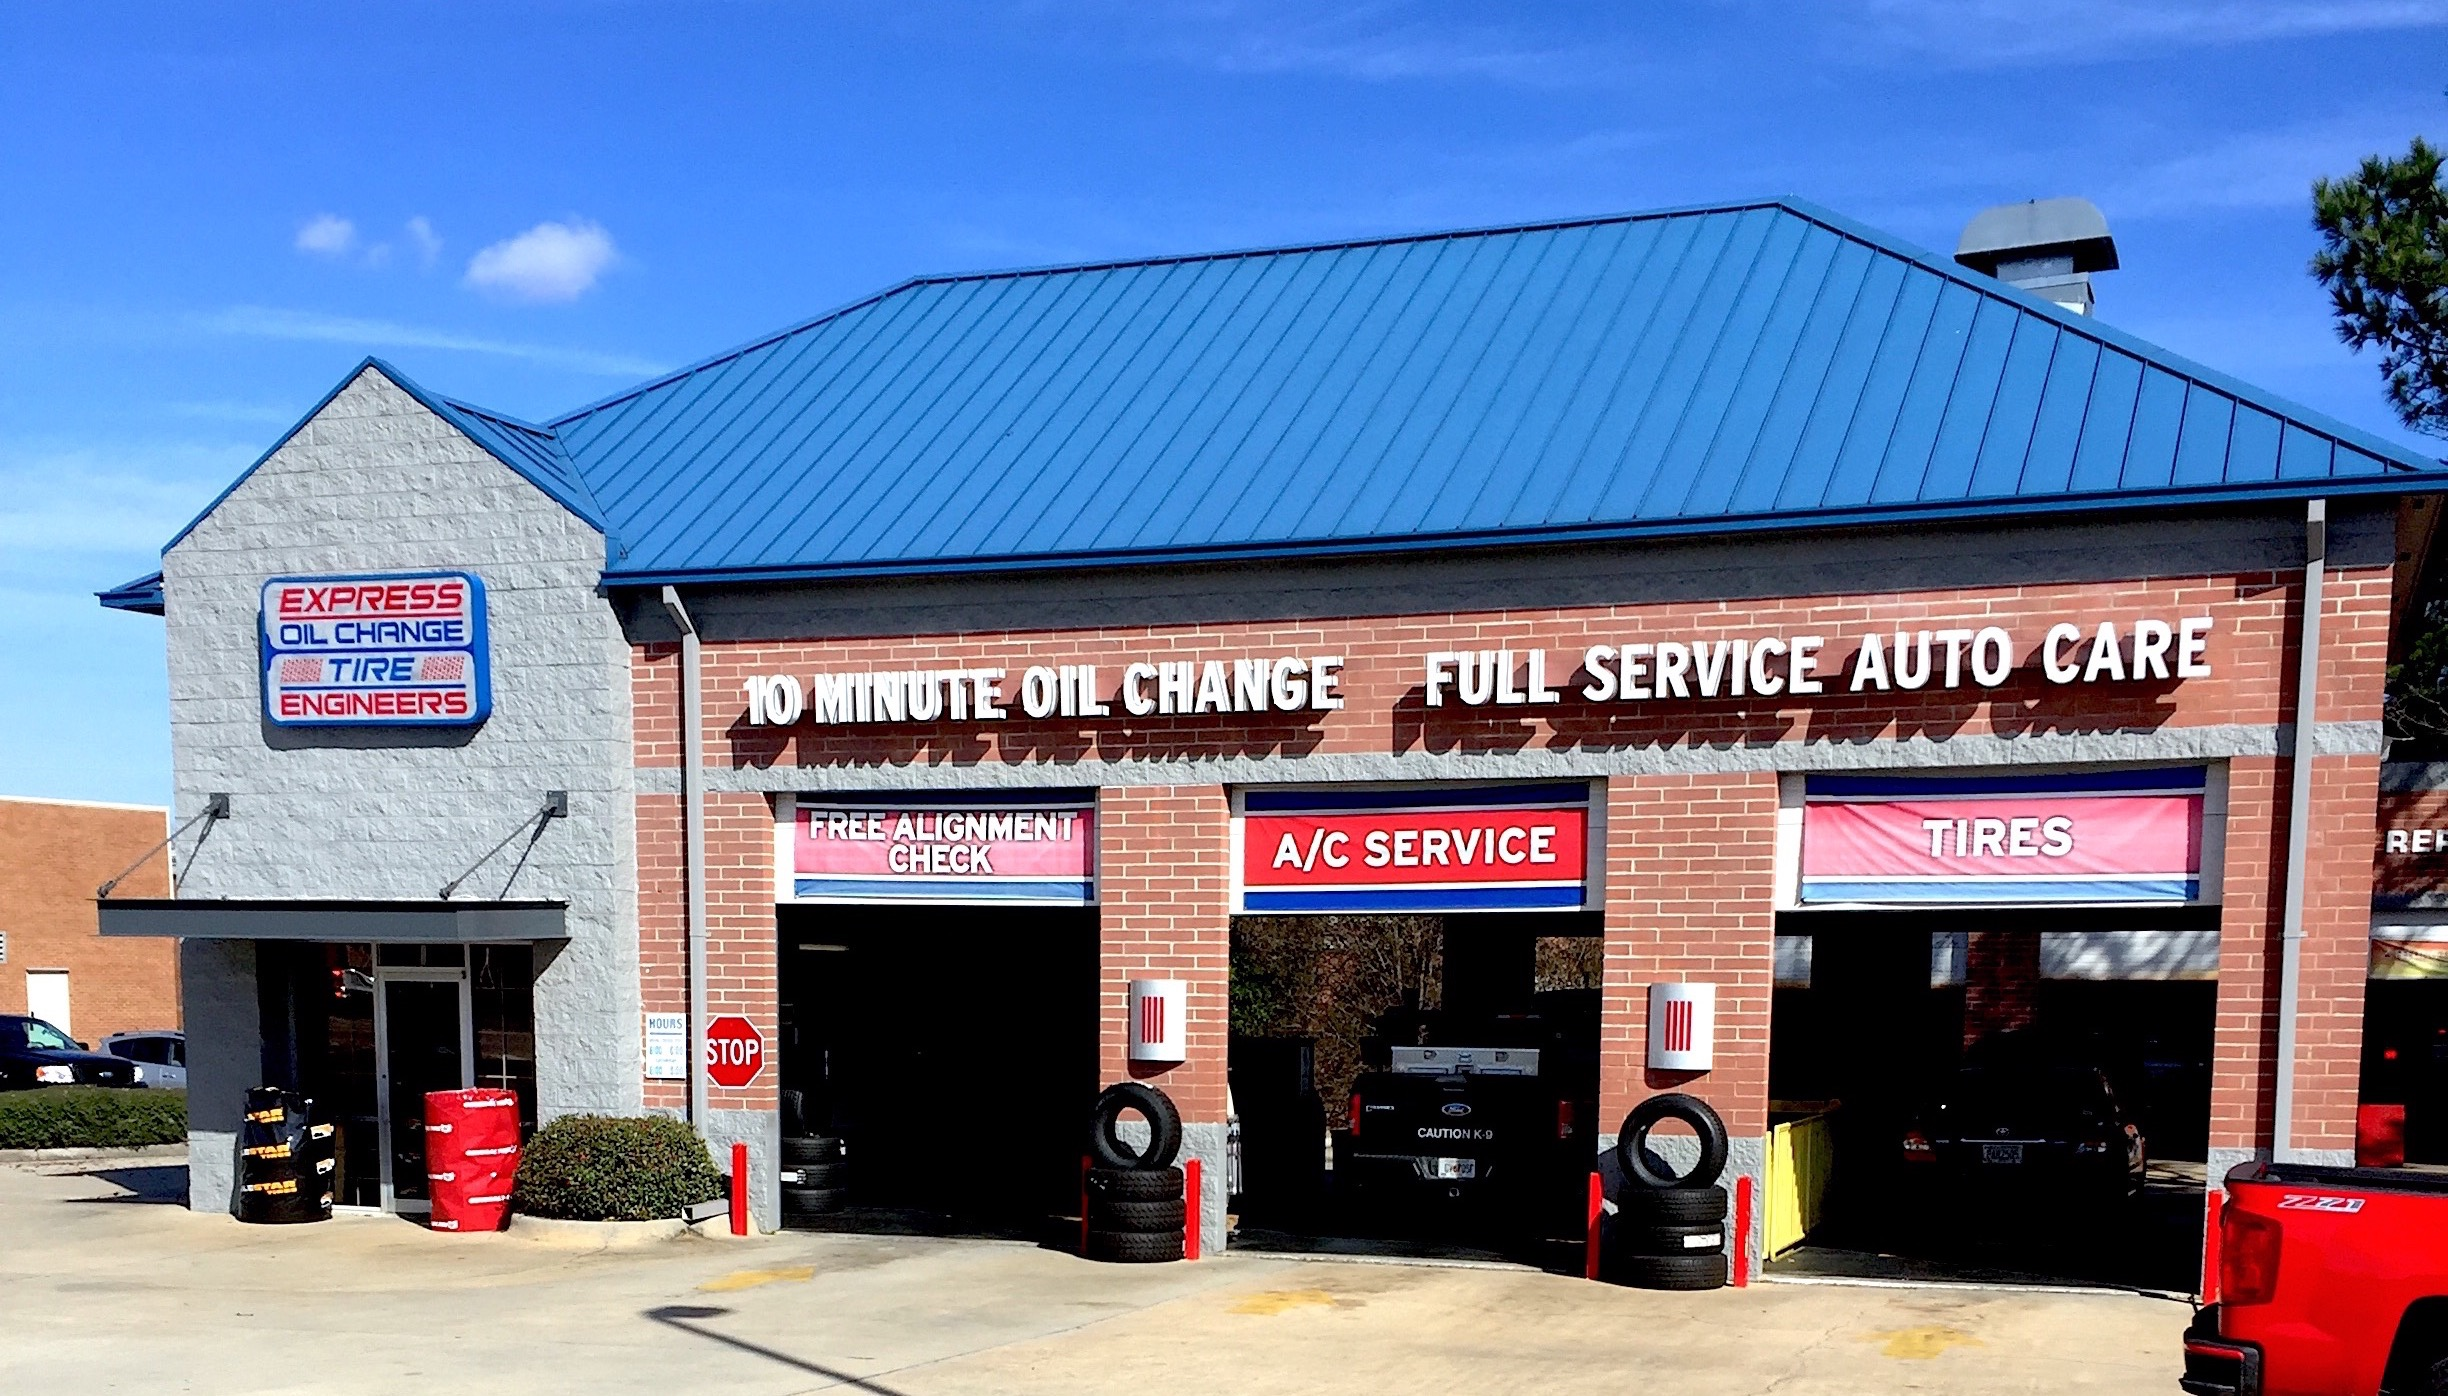 Express Oil Change & Tire Engineers Warner Robins, GA - Houston Lake Road store